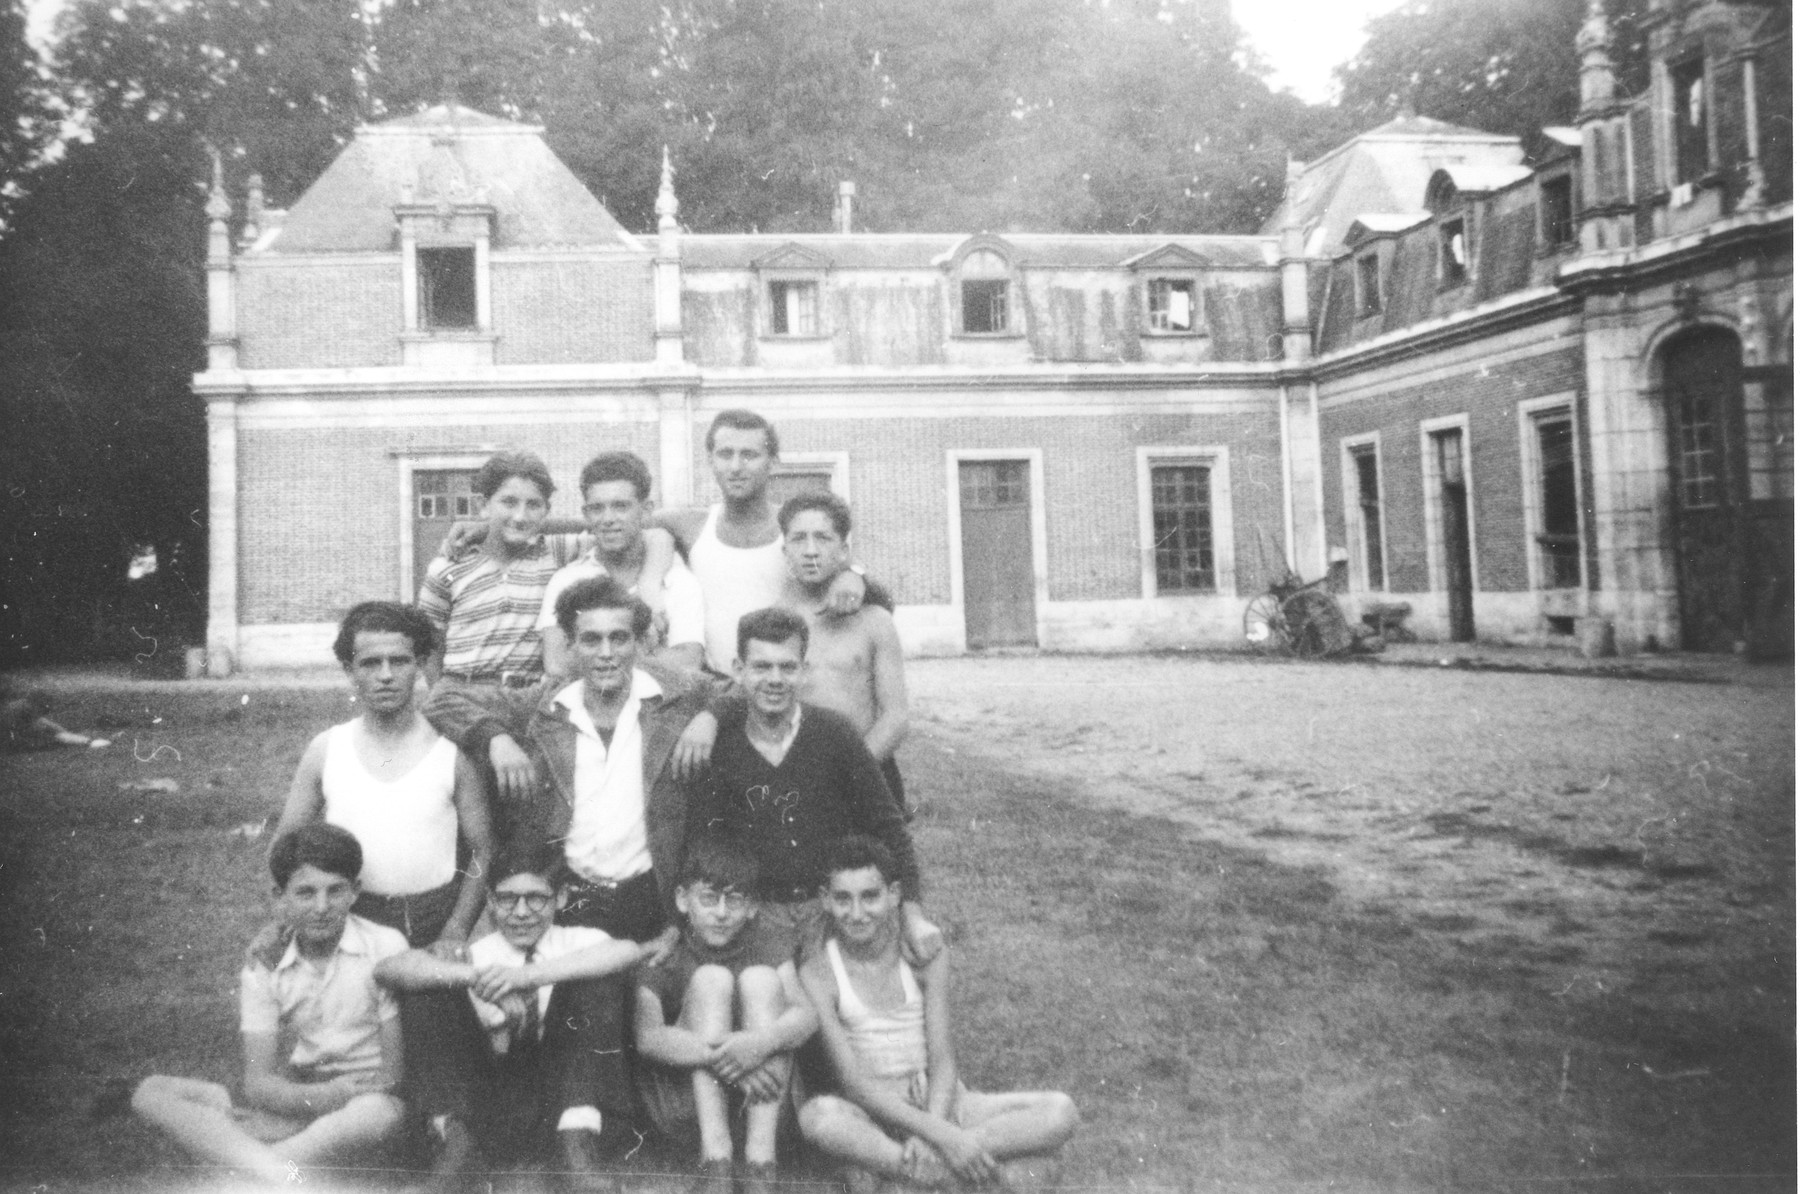 A group of Jewish youth pose outside the Rothschild's Chateau Ferriere, where they are attending a summer camp sponsored by OSE.  Ivar Segalowitz is pictured standing in the back row at the far left.  Ignacz Linzer is standing next to him.